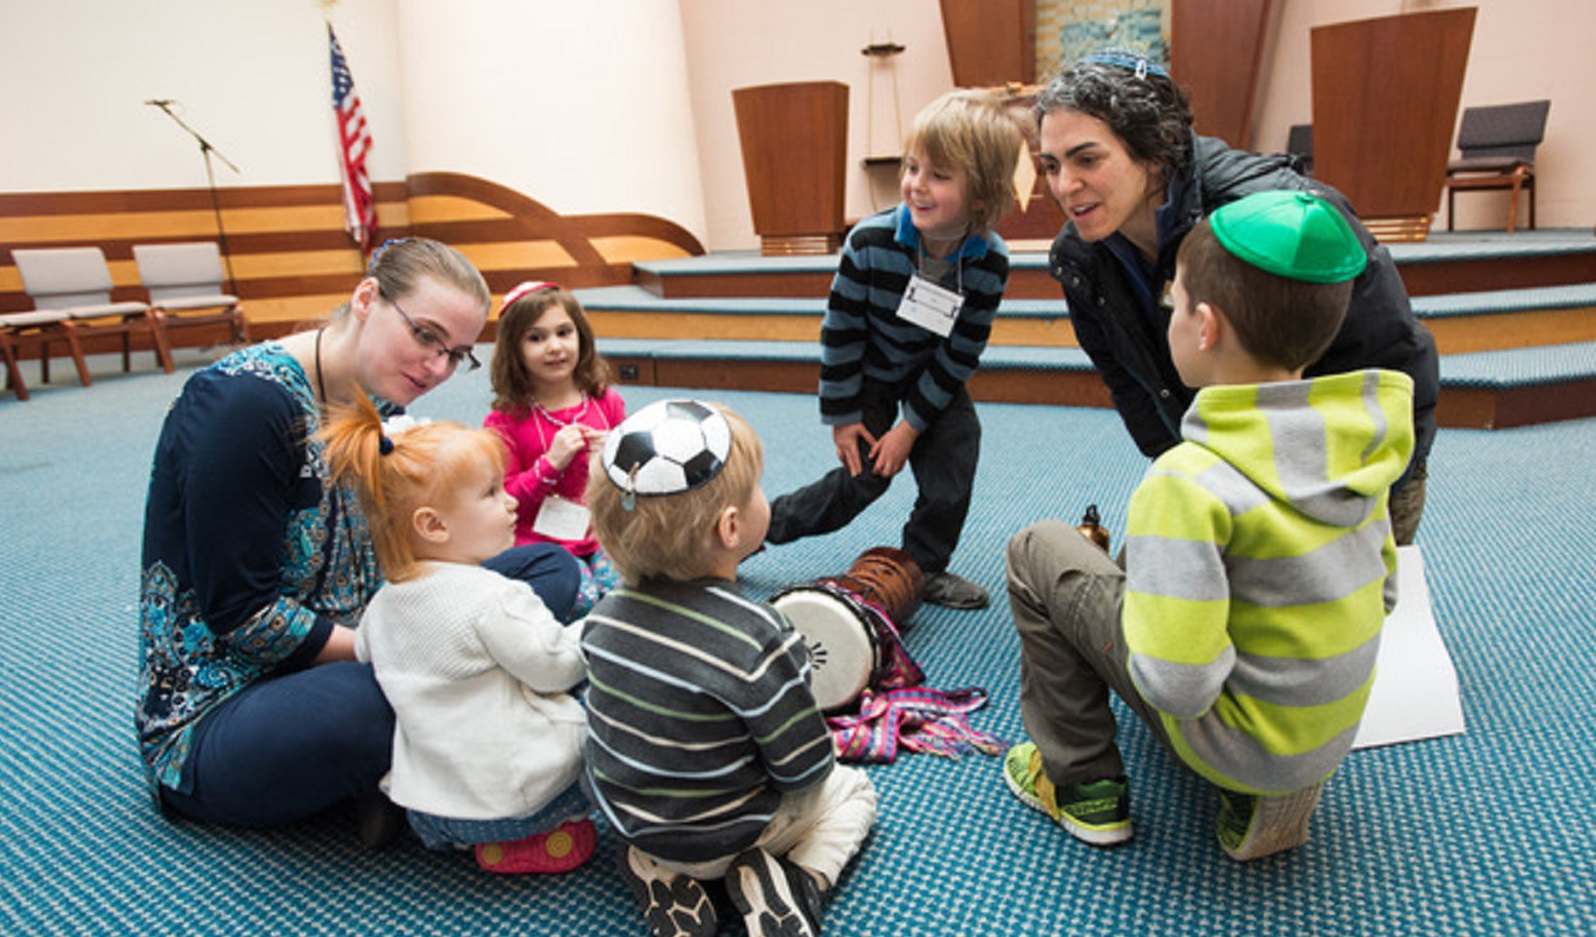 """<span class=""""slider_title"""">                                     Our Religious School                                </span>                                                                                                                                                                                       <span class=""""slider_description"""">Kids from infant to high school find a place to learn Jewish values and make Jewish friends.</span>"""